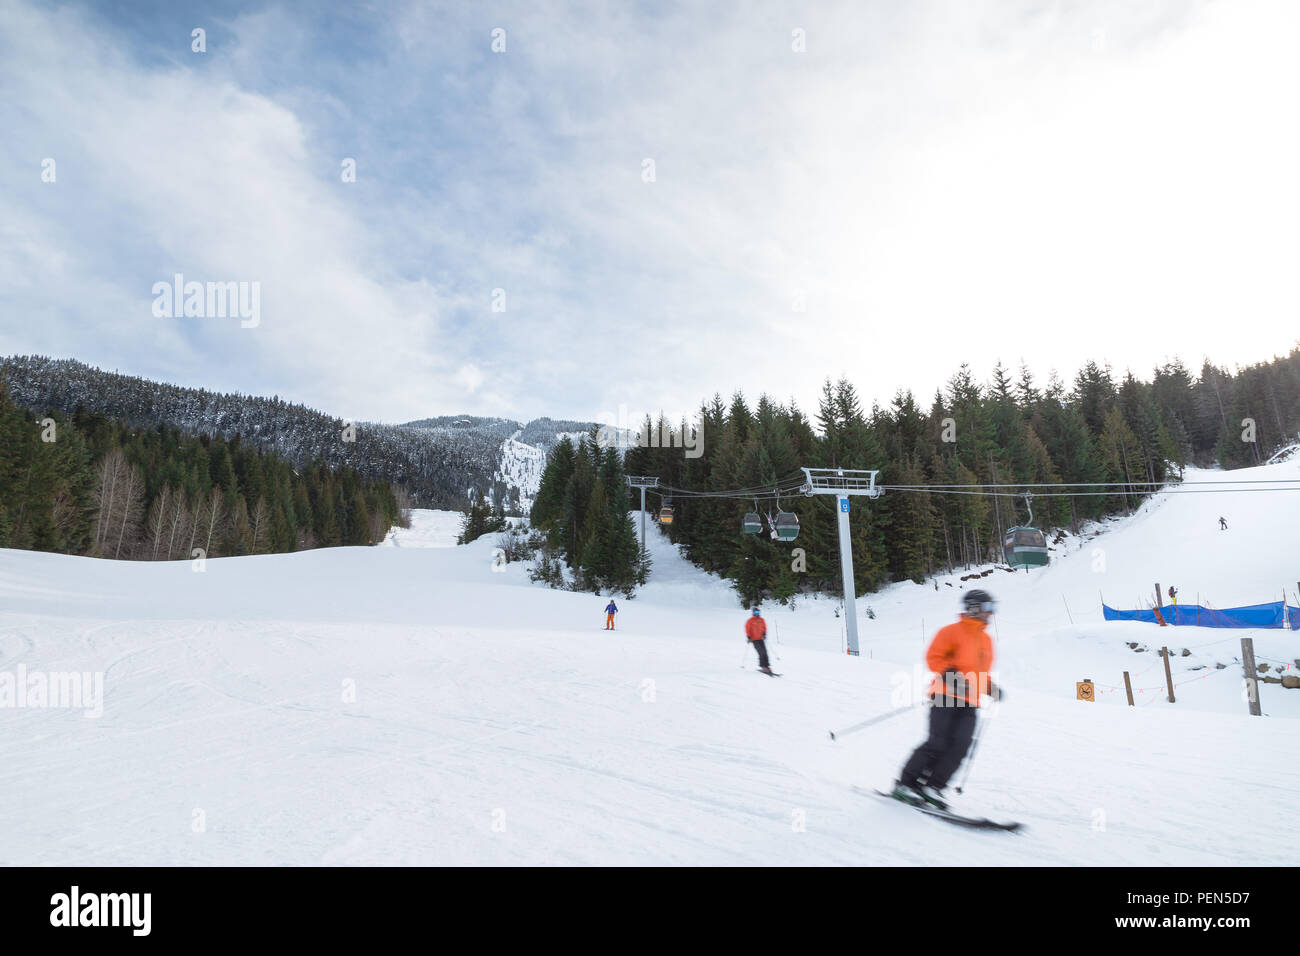 Blurred skiers going downhill on Whistler Mountain. - Stock Image